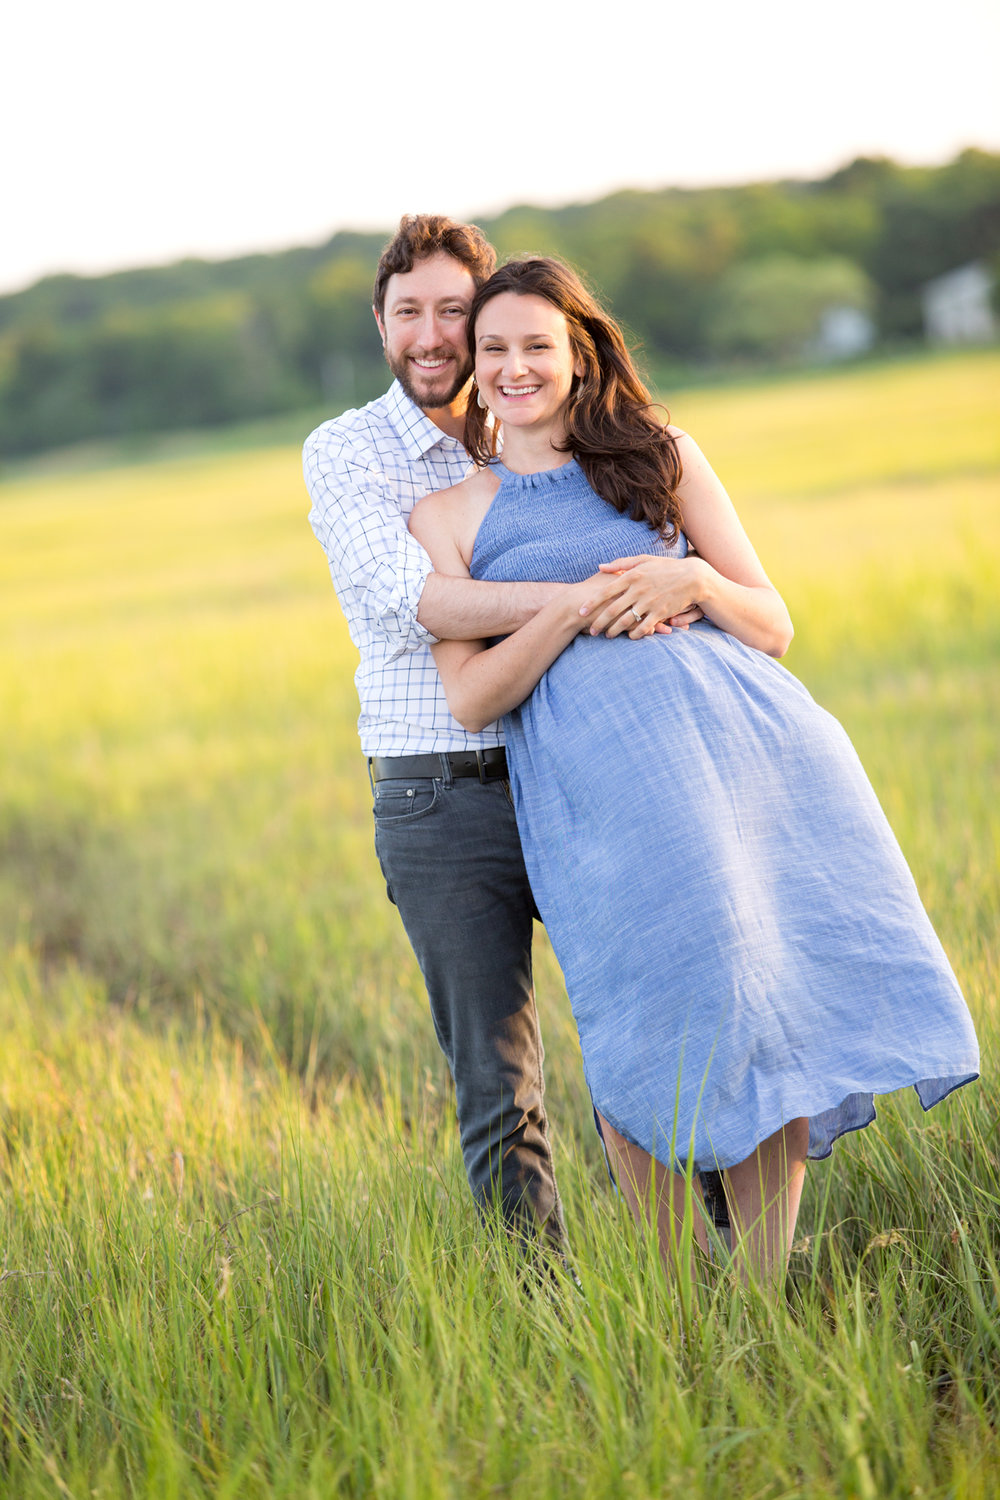 Maternity-Photo-Shoot-Beach-Long-Island-Family-Photographer.jpg